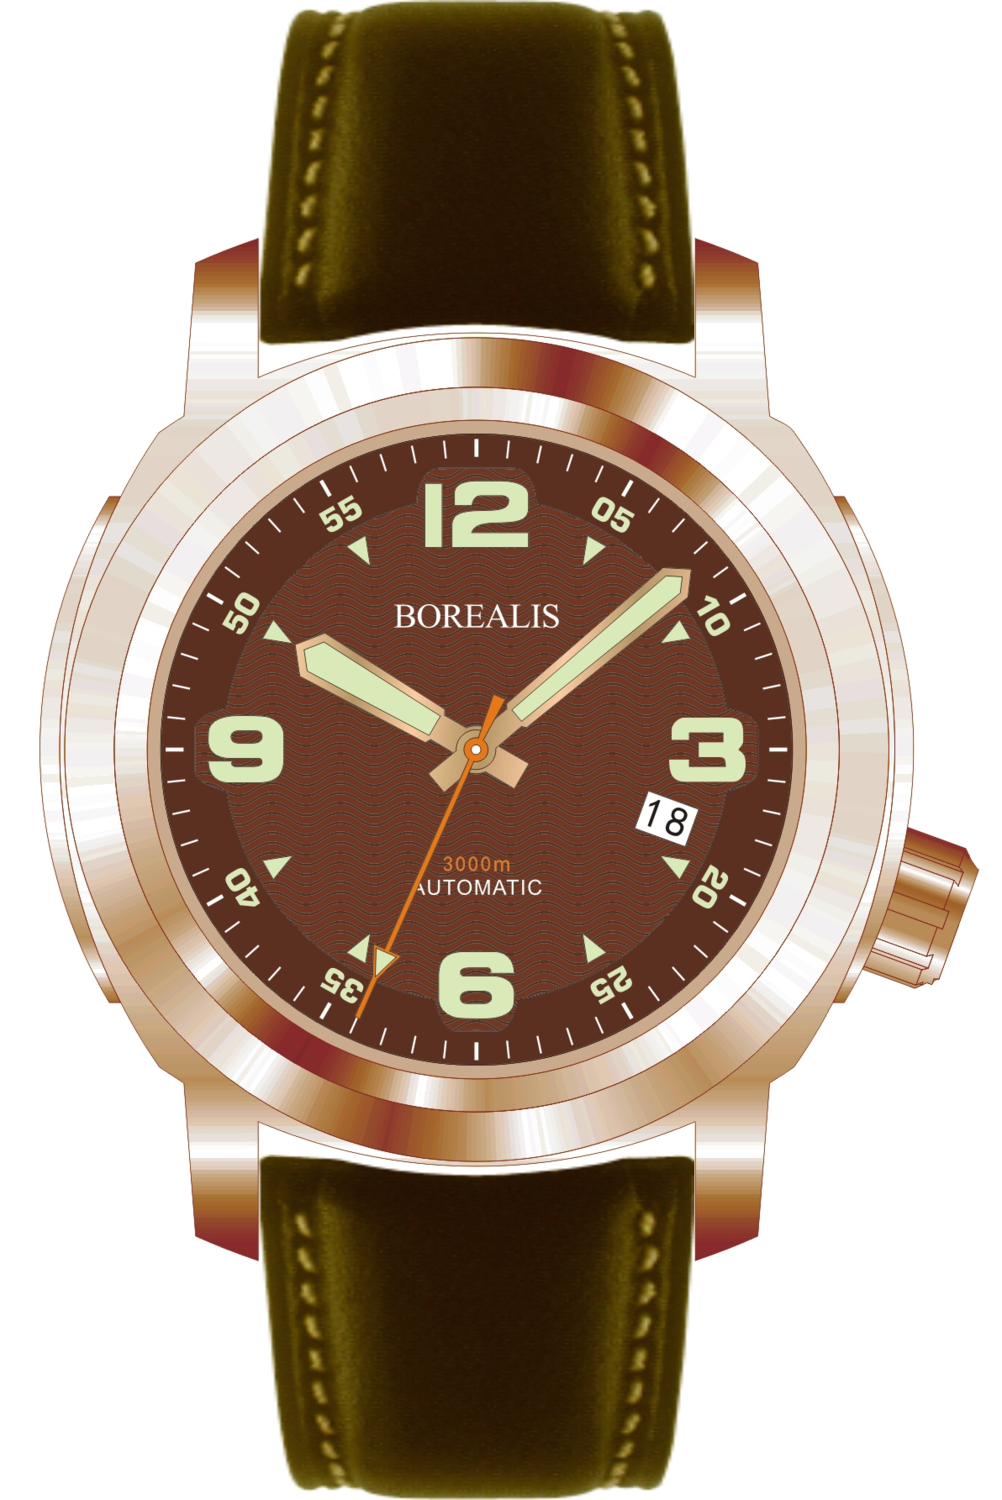 Borealis Batial Bronze CuSn8 Brown 3000m Miyota 9015 Automatic Diver Watch With Date Display